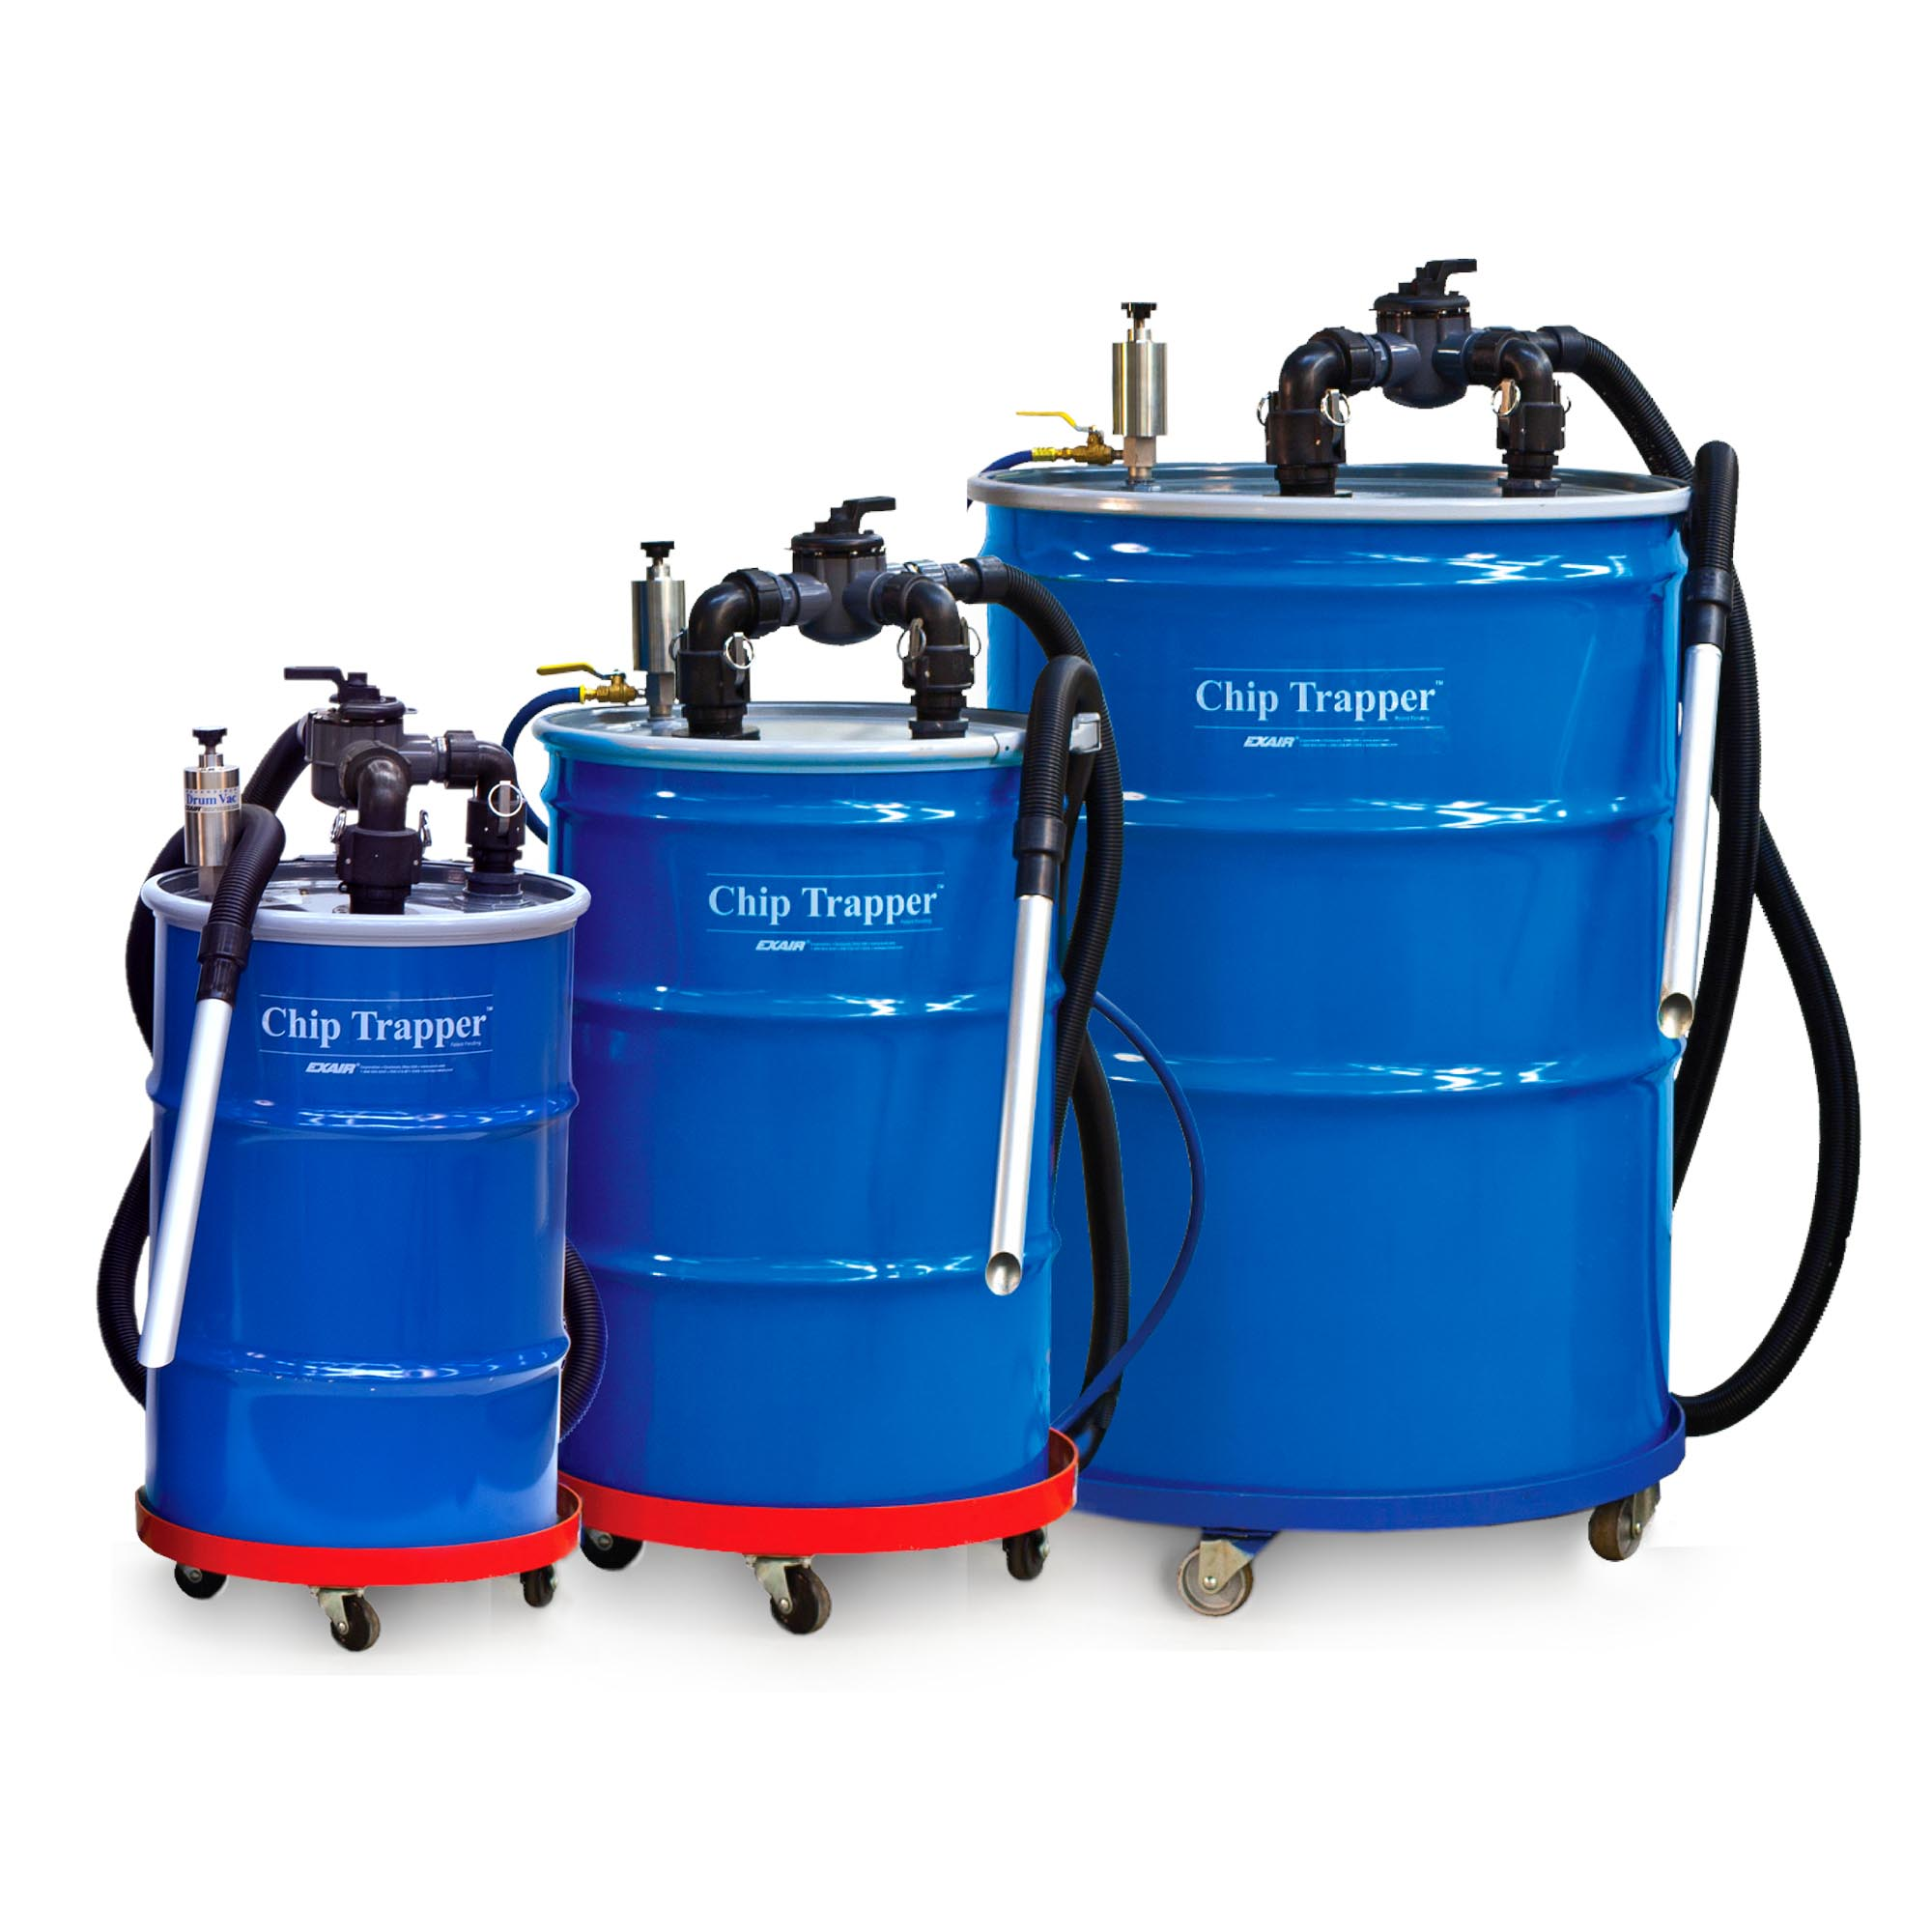 Chip Trapper Systems are available in 30, 55 and 110 gallon sizes.